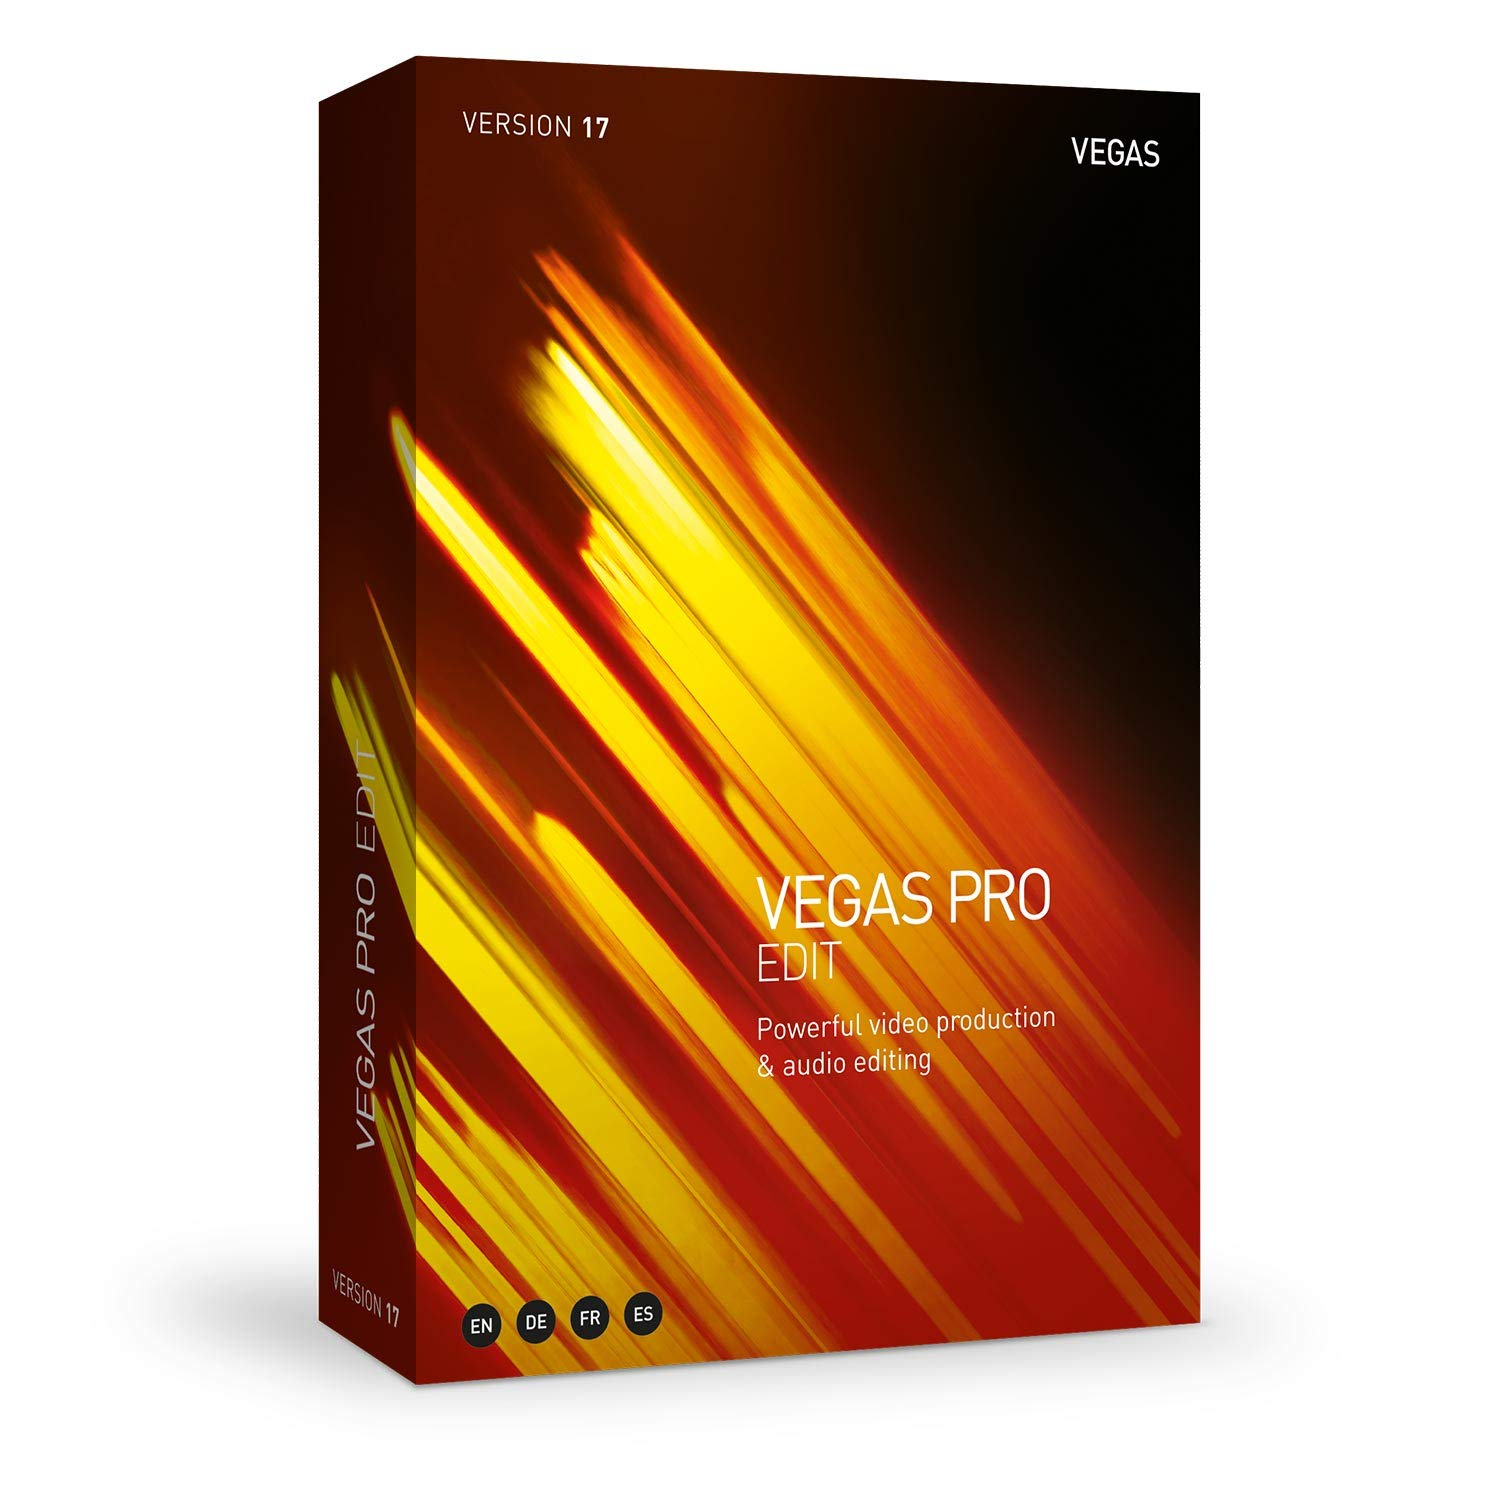 VEGAS Pro 17 Edit - Professional Video and Audio Editing by Vegas